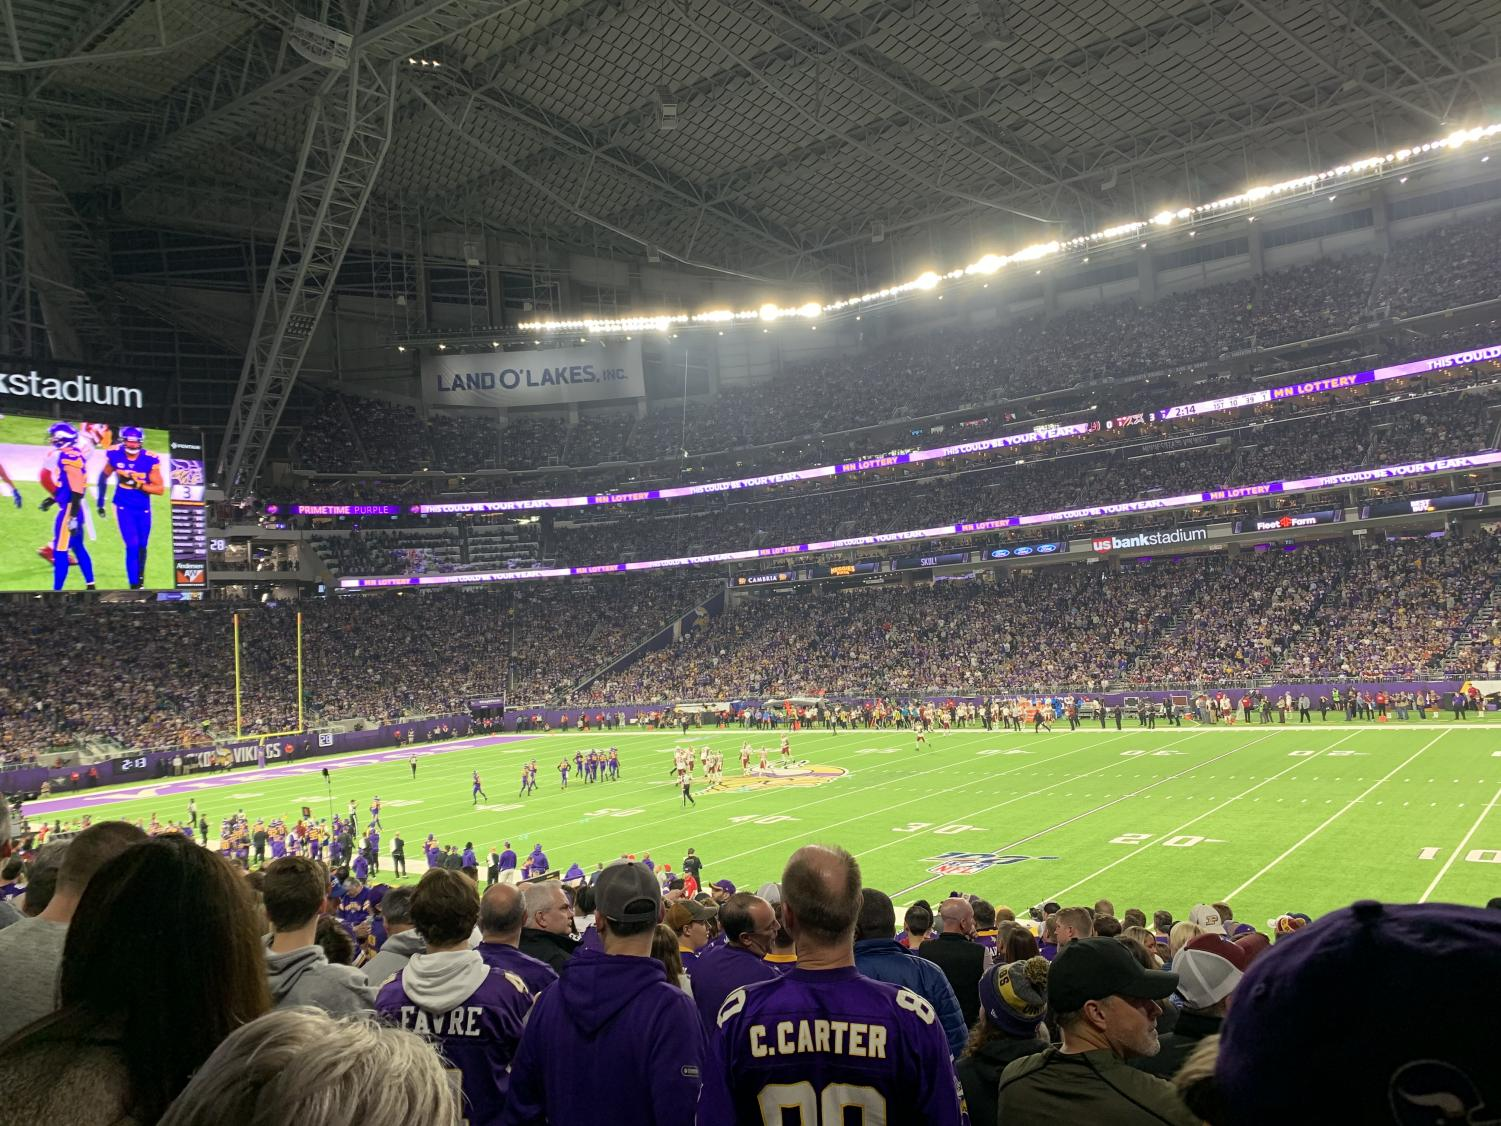 Brady Giertsen believes Vikings games are the best sporting event to go to in Minnesota.